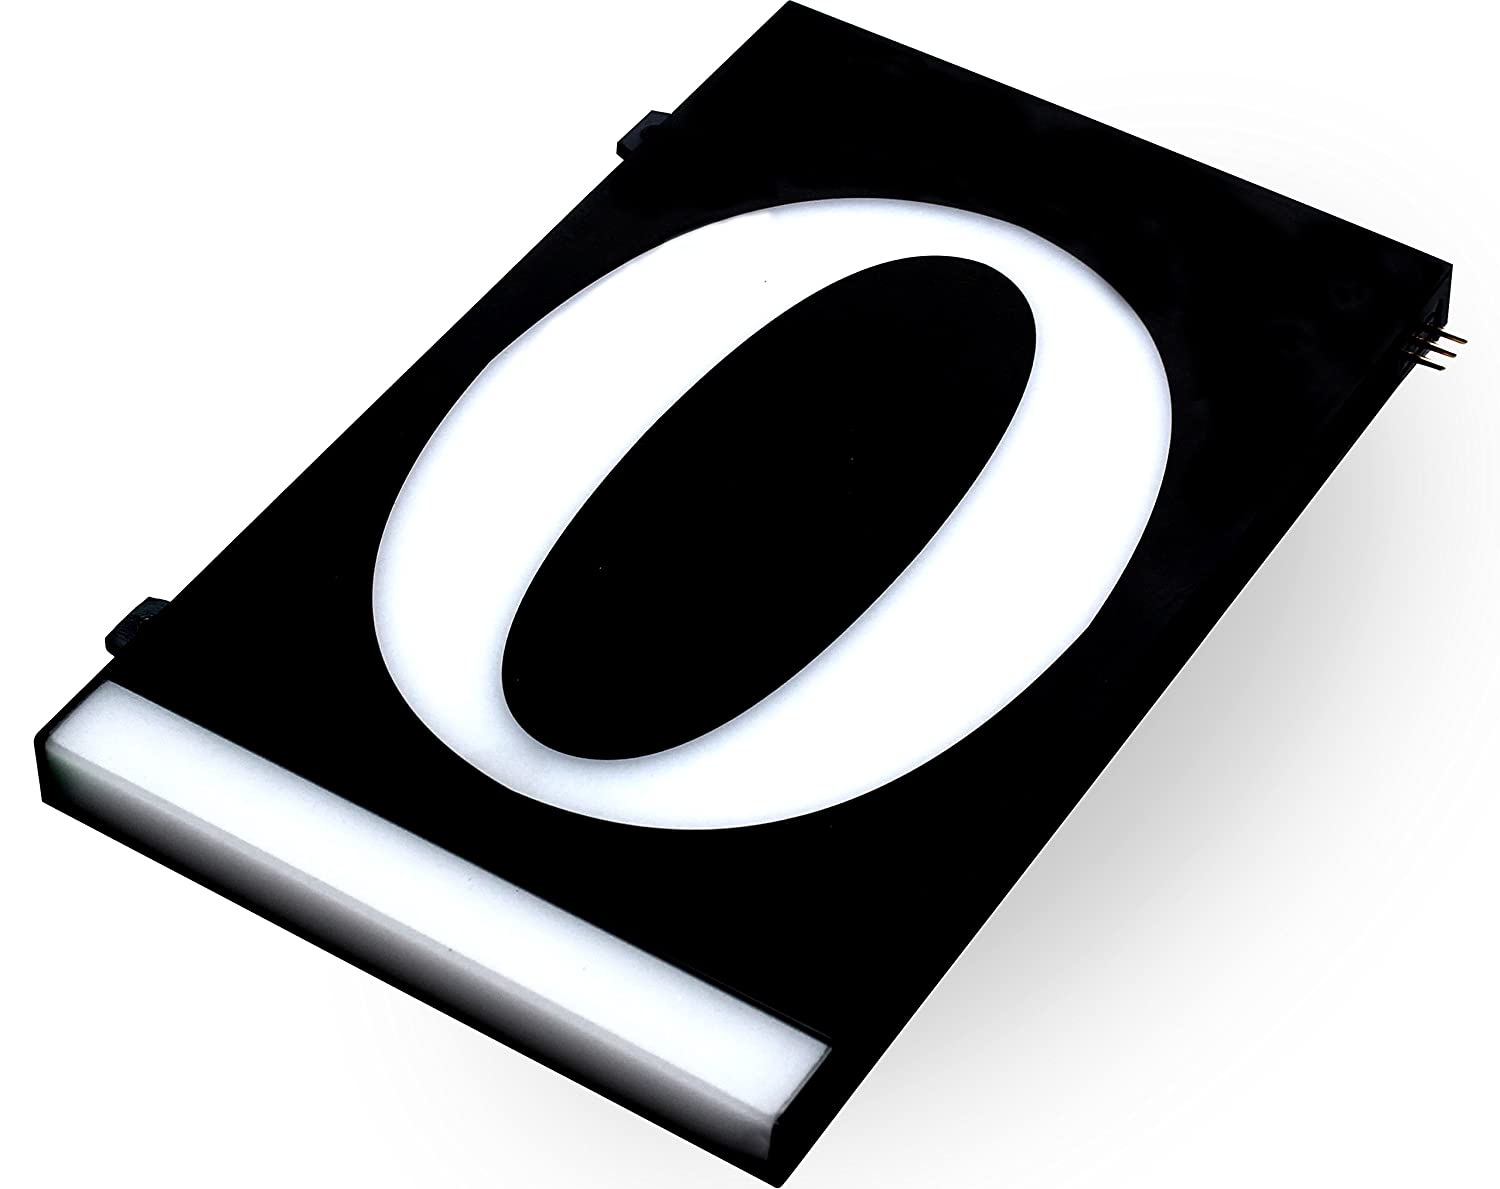 HOMIDEA Backlit LED House Number and Sound Activated Overhead Light. Personalized Large Black and White Modern Address Number Sign/Custom Street Number Plaque. (4) Homidea Direct Sales Inc.